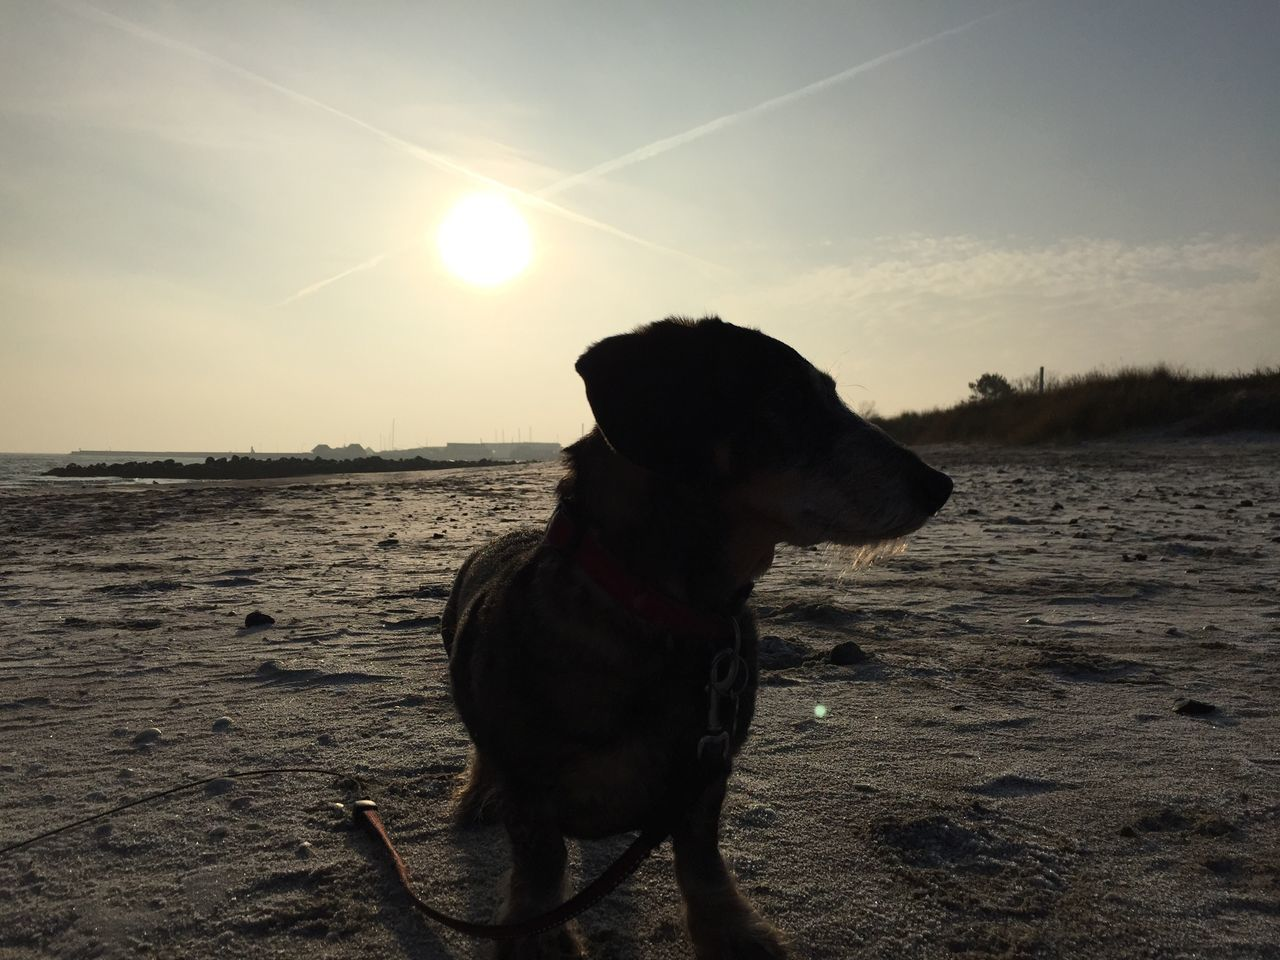 dog, pets, one animal, domestic animals, animal themes, sunlight, sunset, mammal, sun, sky, nature, no people, beach, outdoors, sand, water, beauty in nature, day